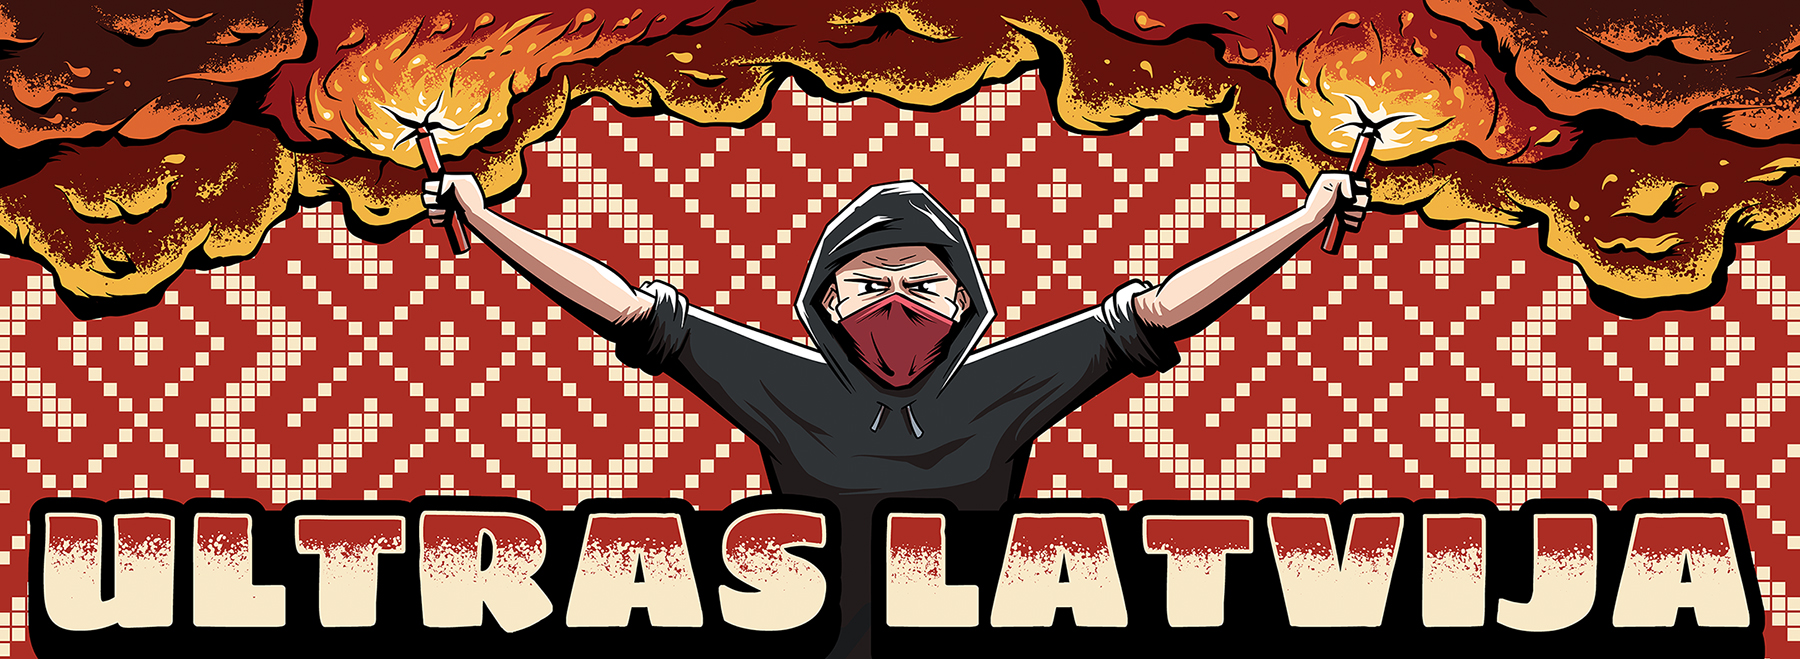 ultras_latvija_small